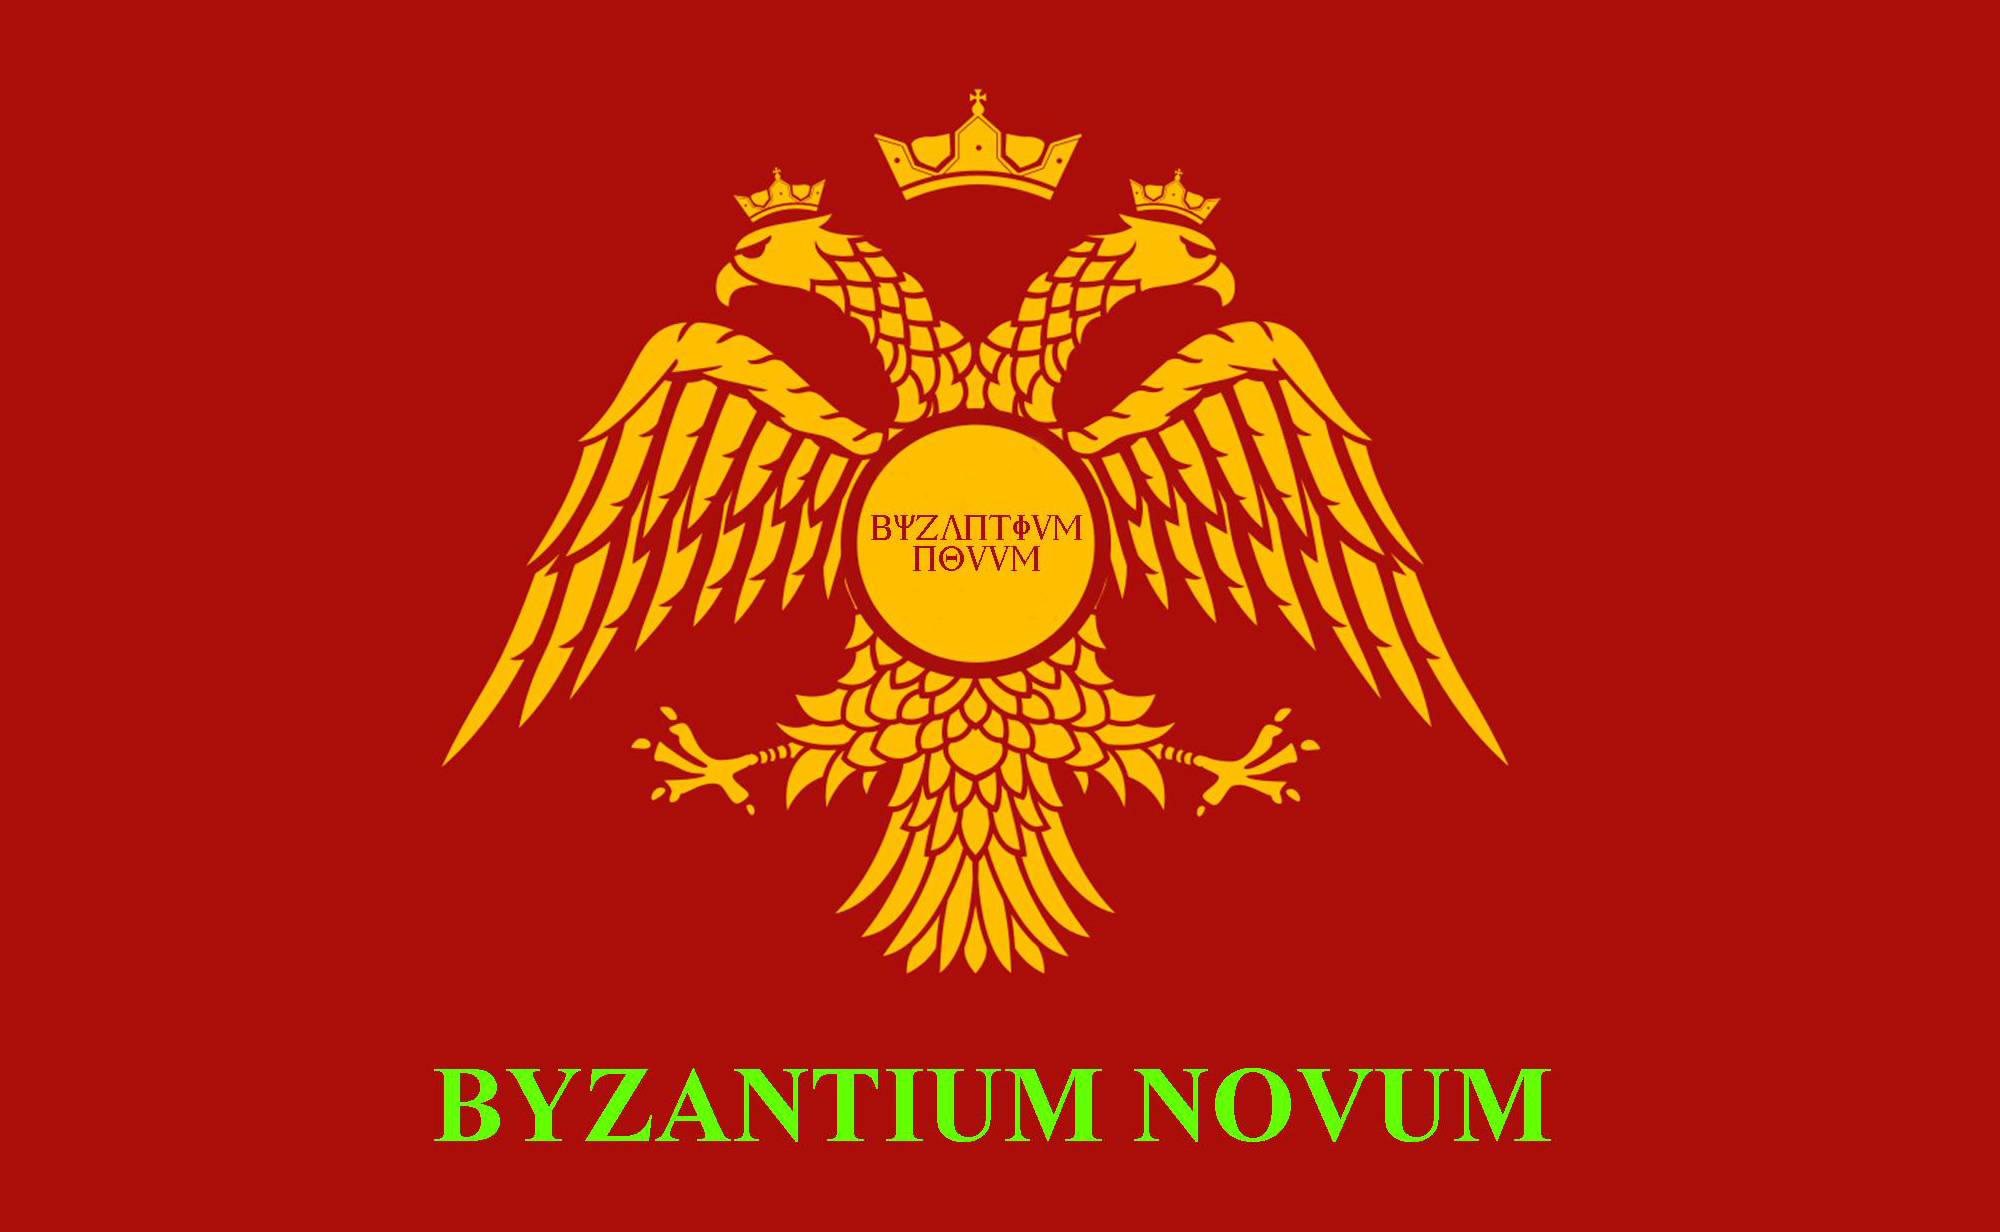 an account of the byzantine empire The byzantine empire vs the roman empire impact on socioty both used paintings, sculpture of wood, granite, and ivory, architecture, and walls to creat mosaics and works of art that at times may seem similar but have a few large differences both empires used open areas and wide arches in their .